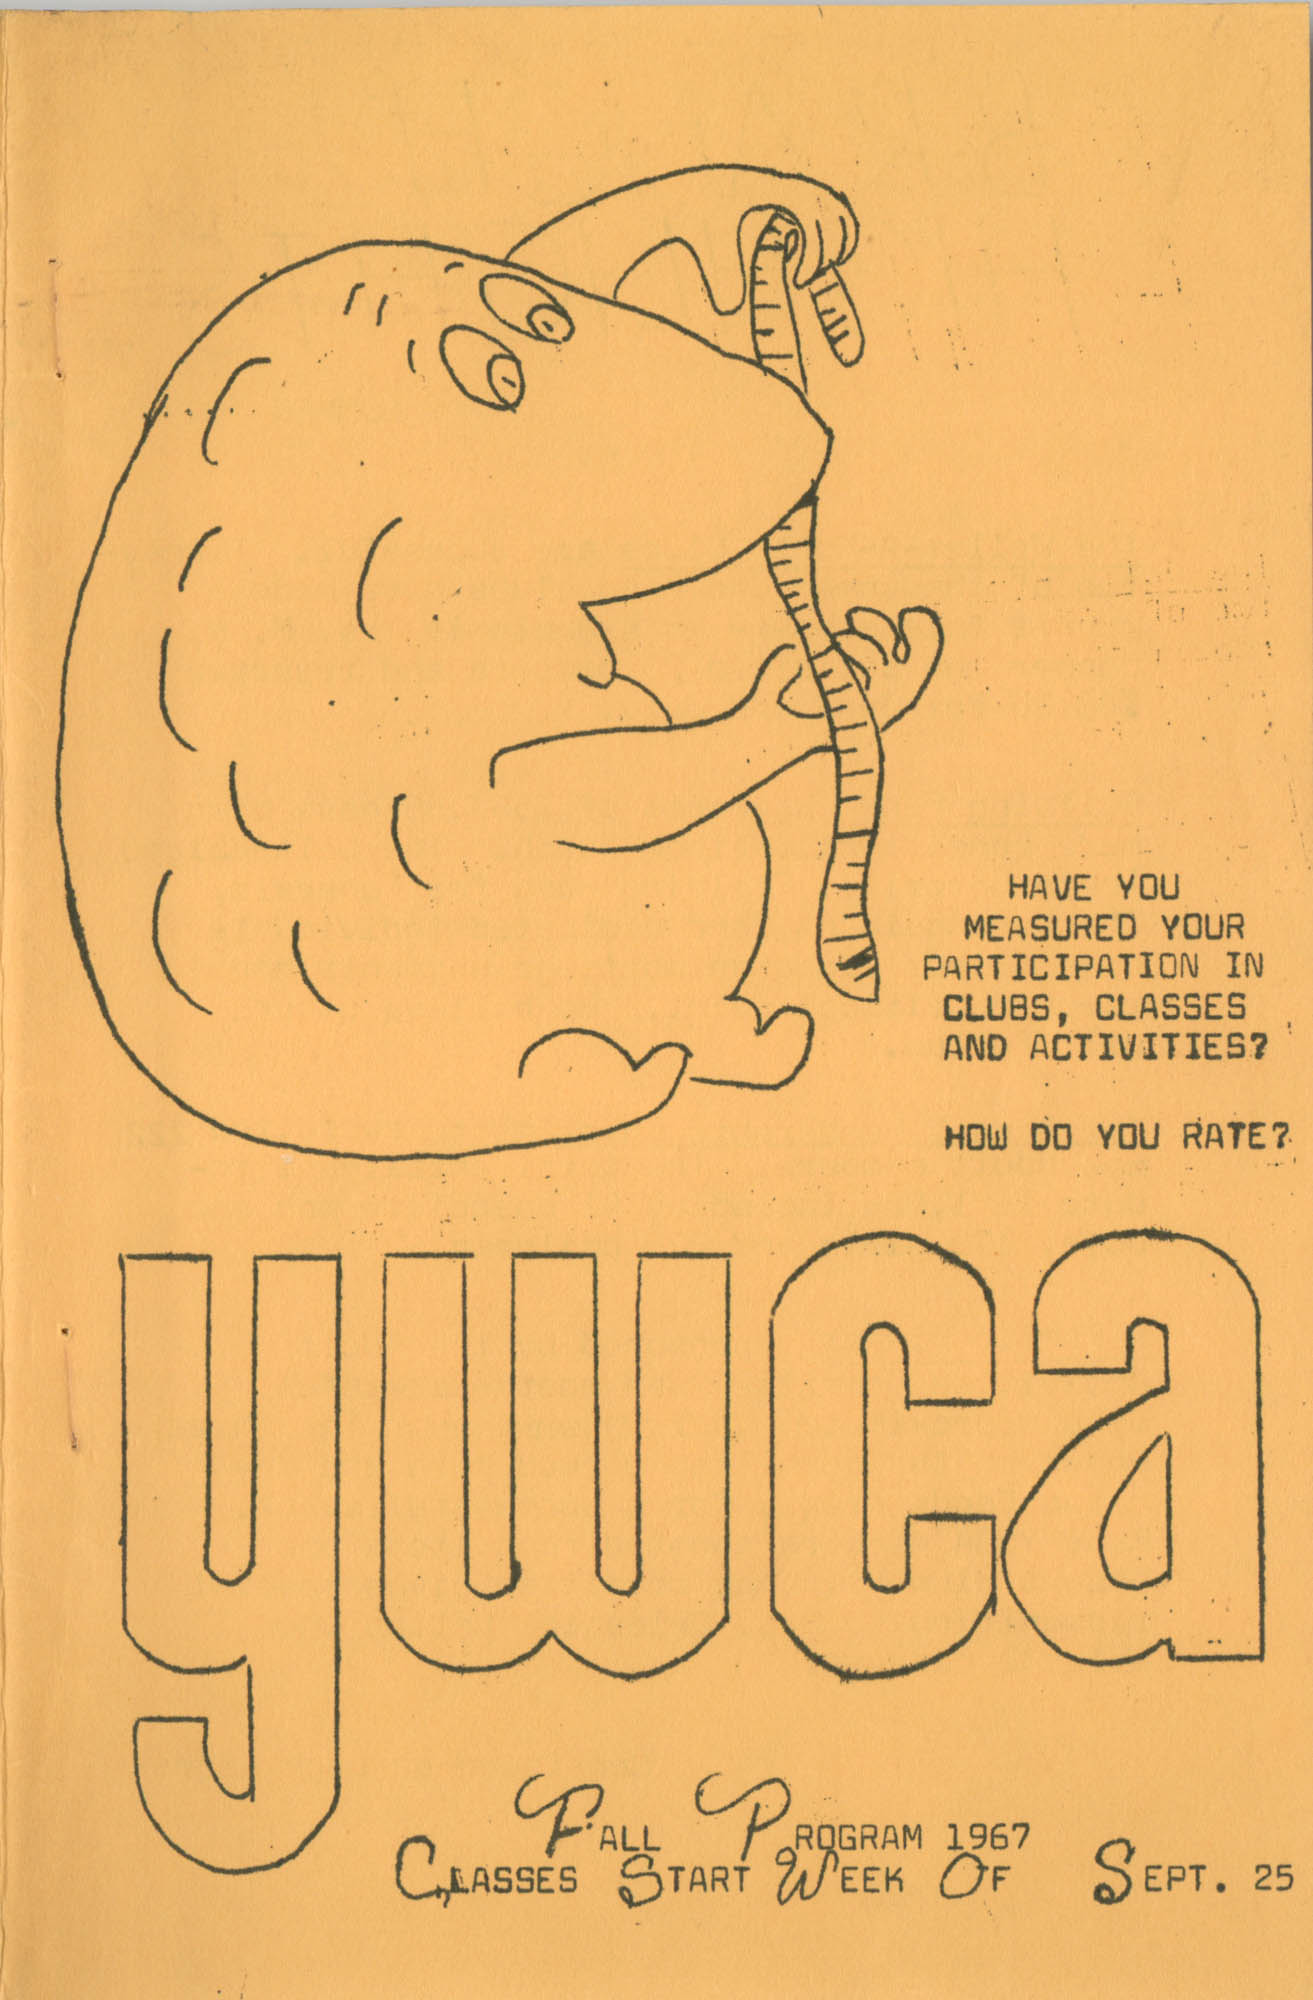 Coming Street Y.W.C.A. Fall Program, 1967